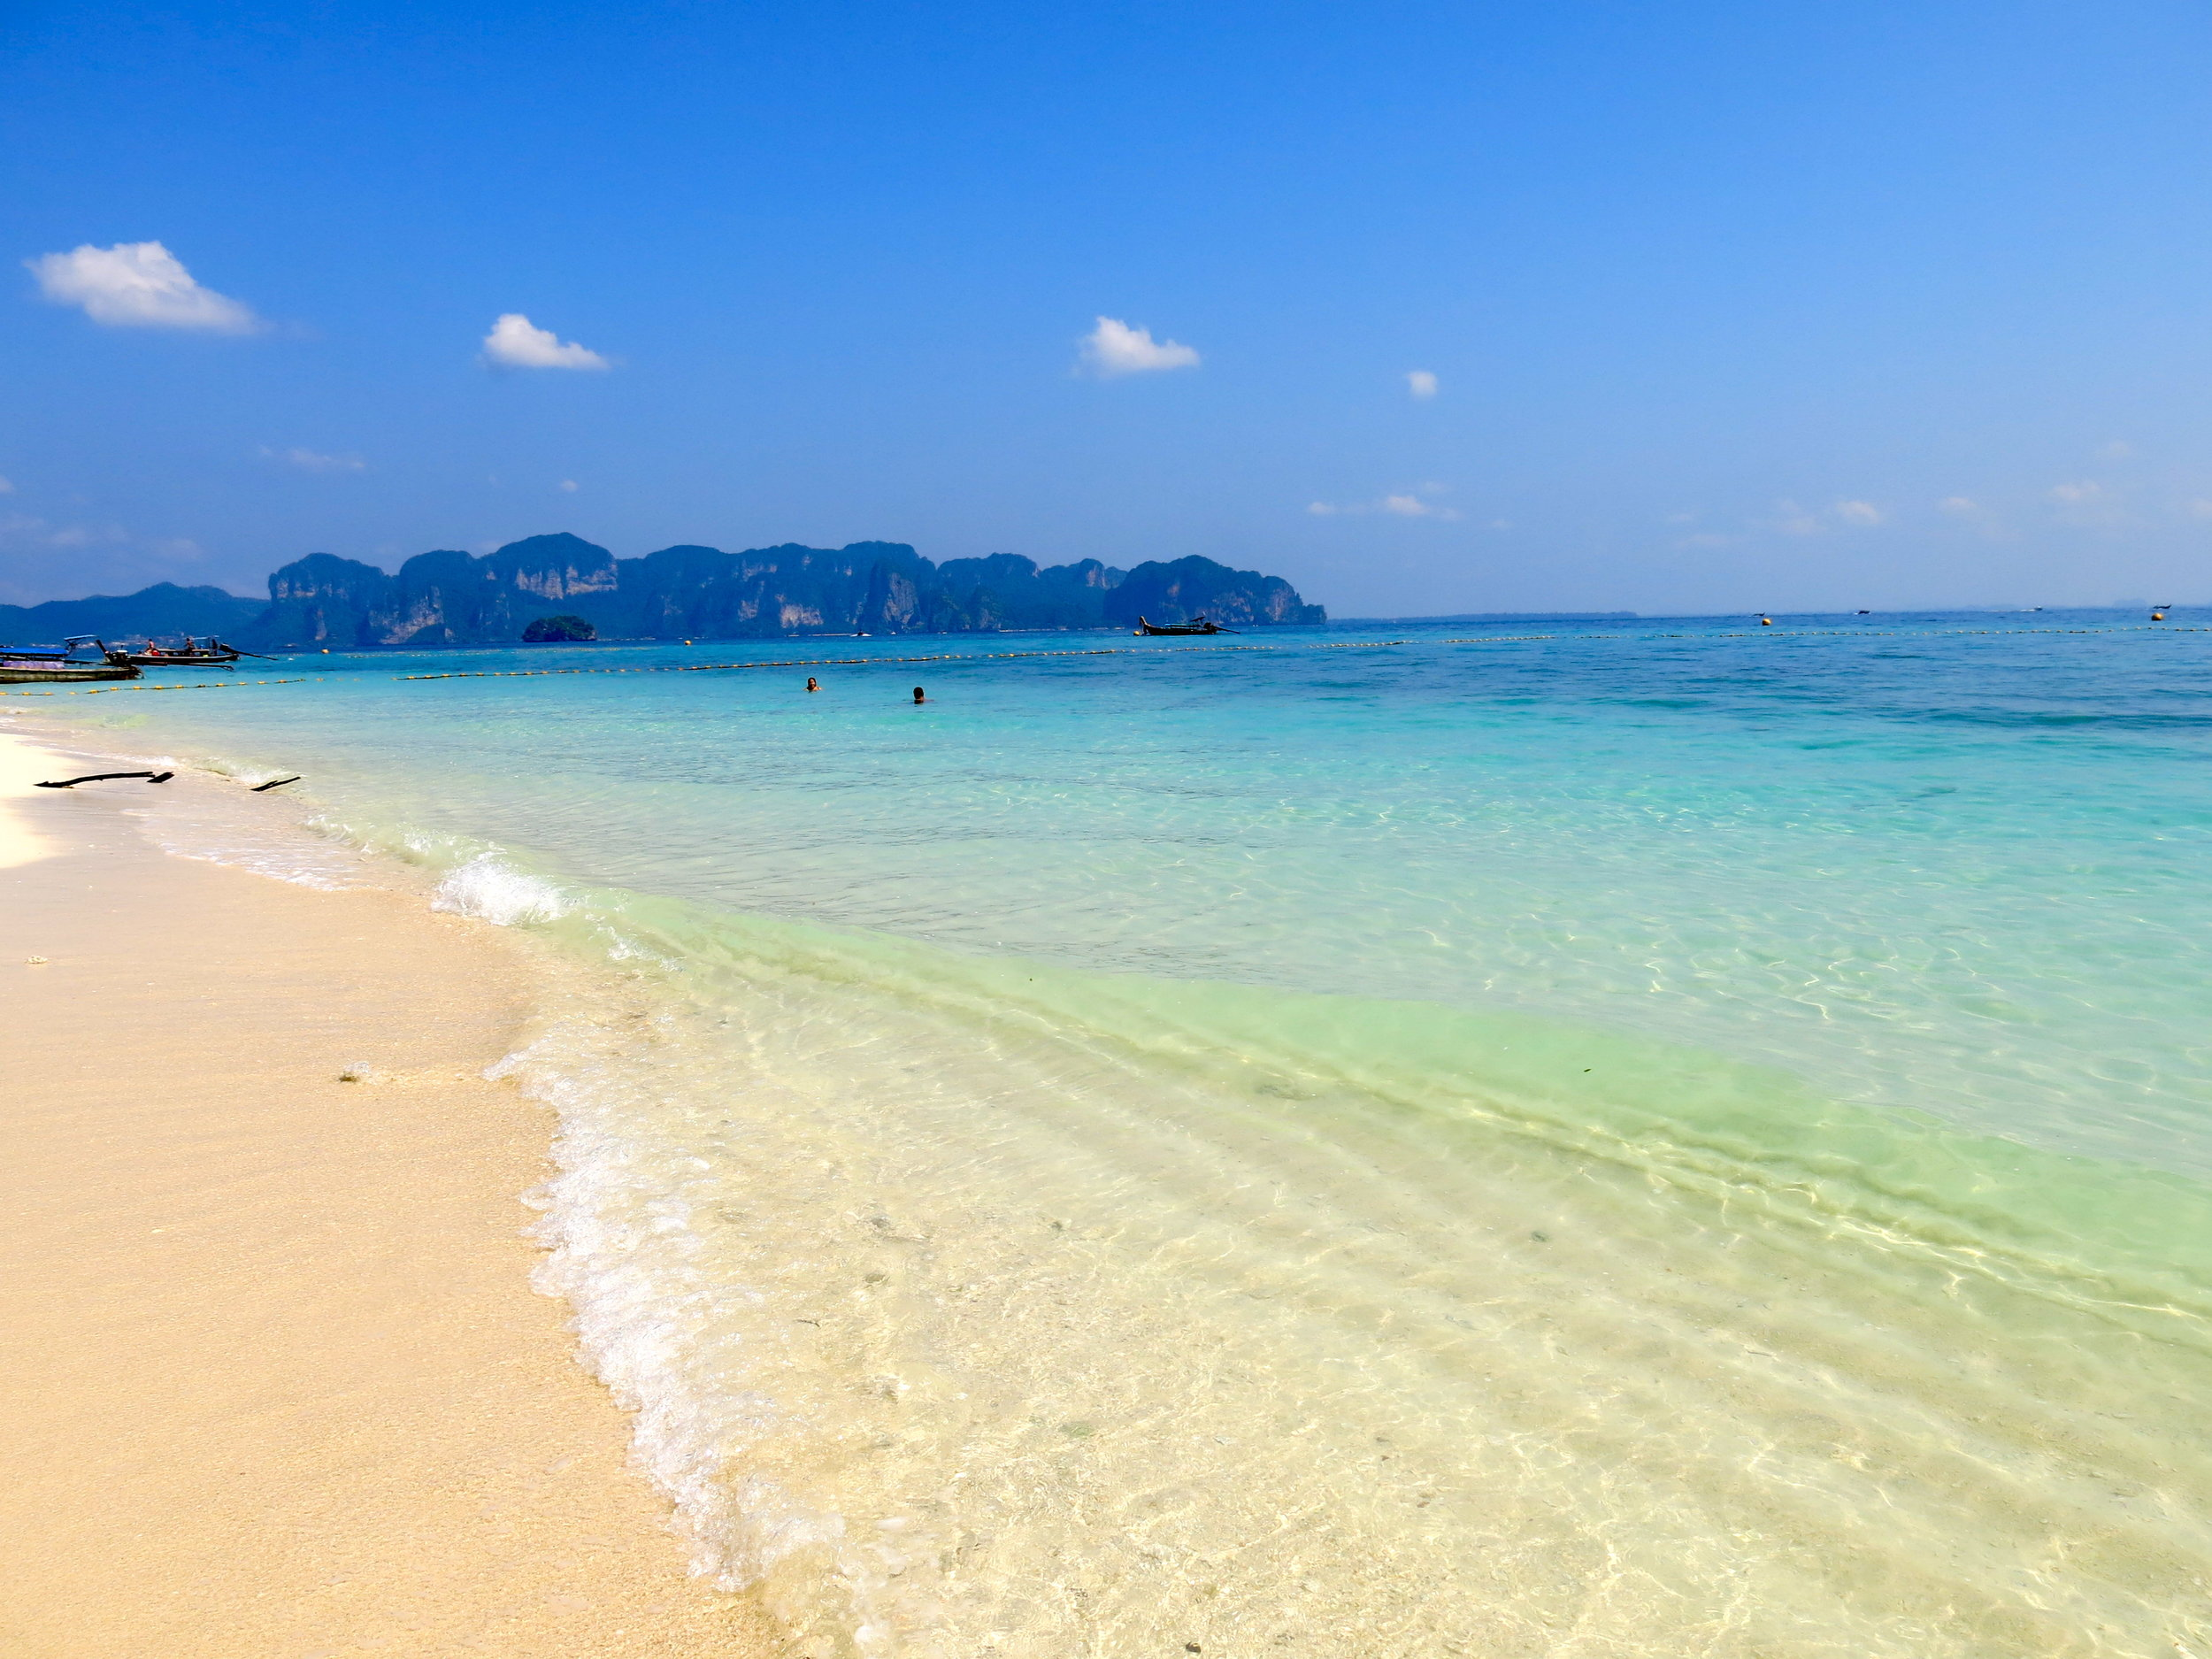 A sandy beach of Koh Poda without the crowds